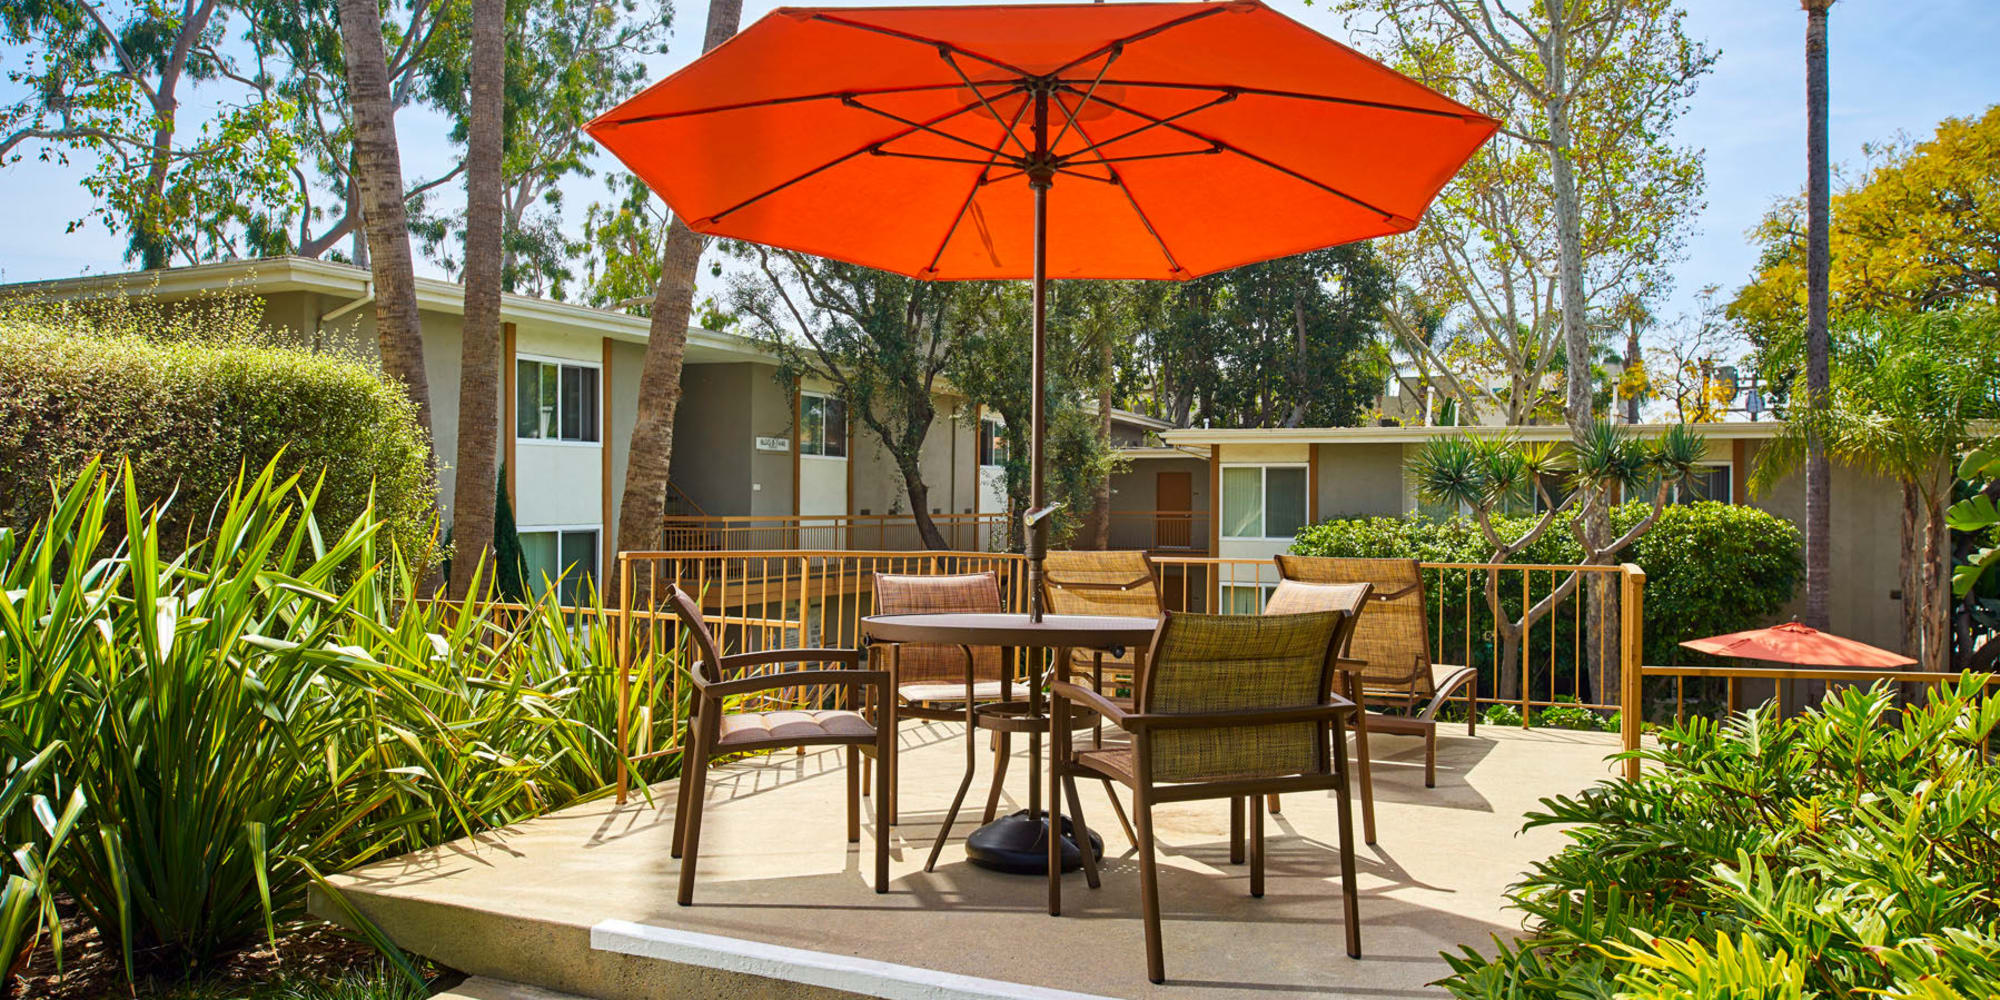 Umbrella providing shade to an outdoor seating area surrounded by lush landscaping at West Park Village in Los Angeles, California